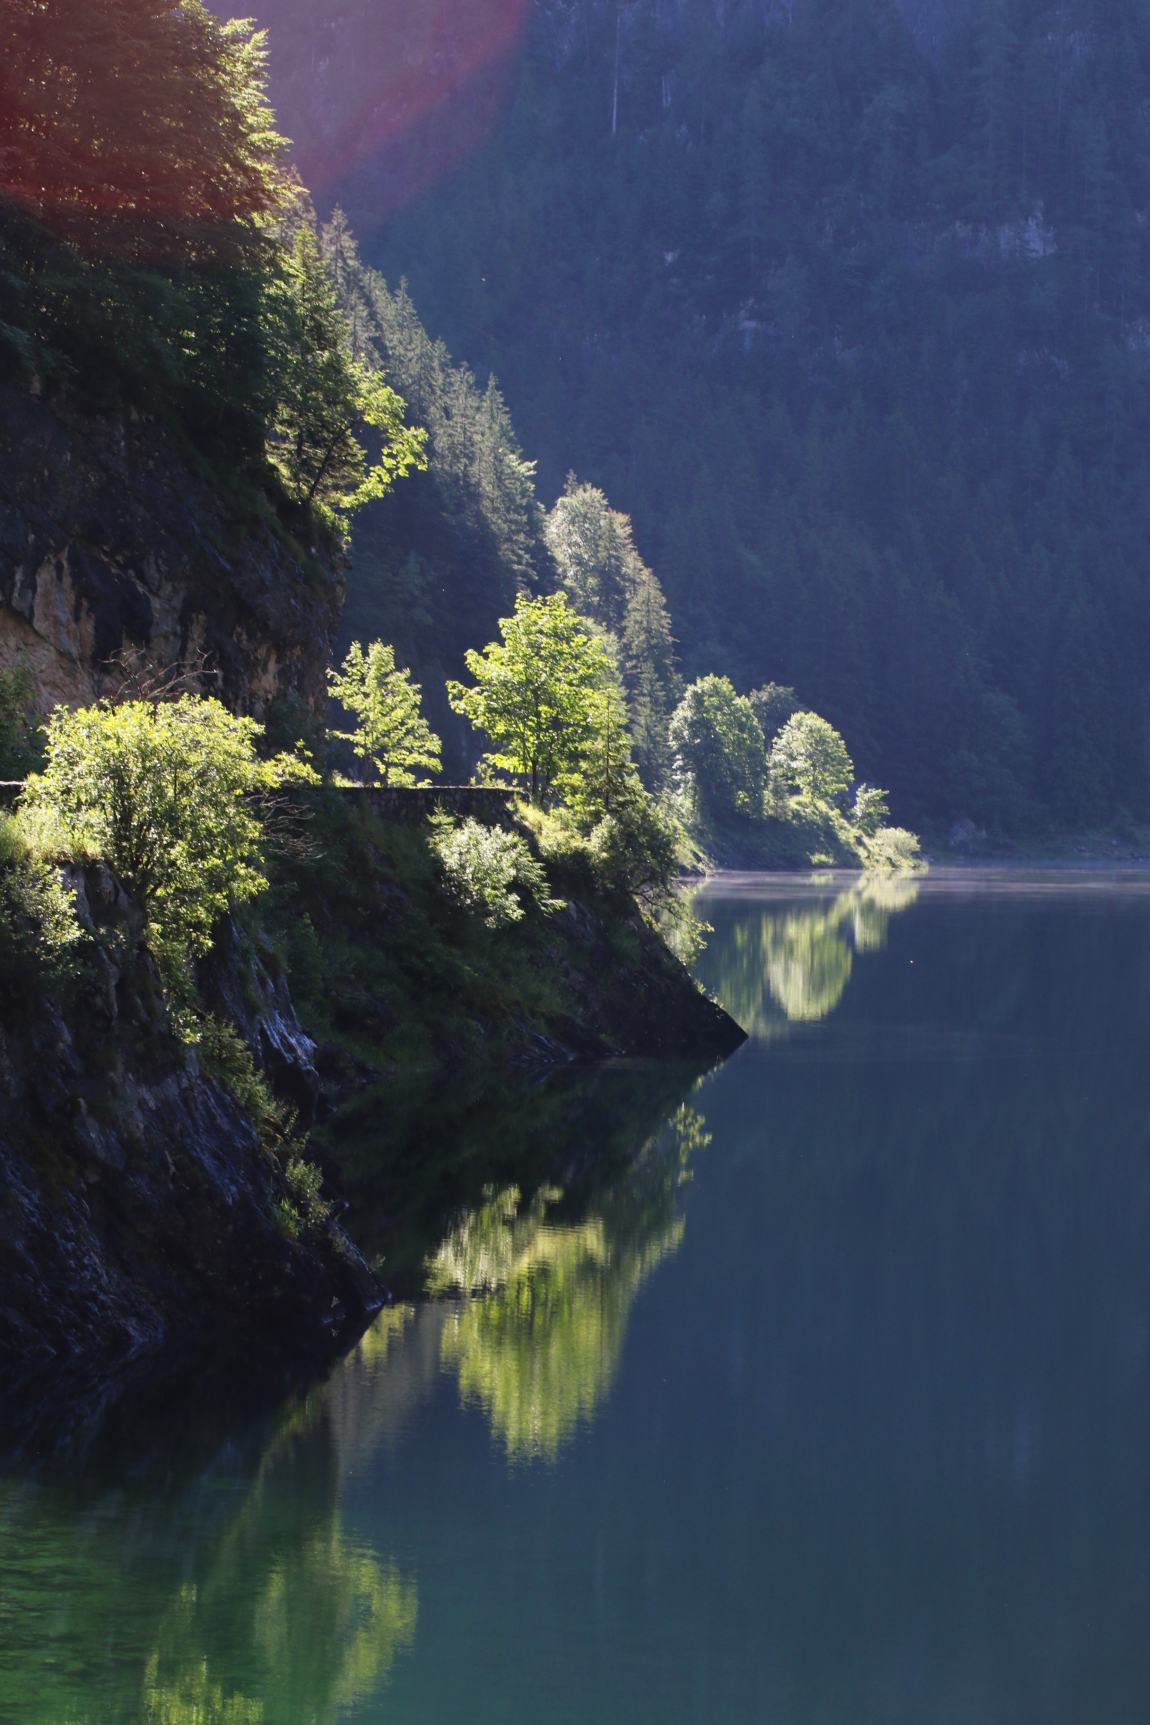 The sun catching the trees and casting great reflections on Lake Gosau